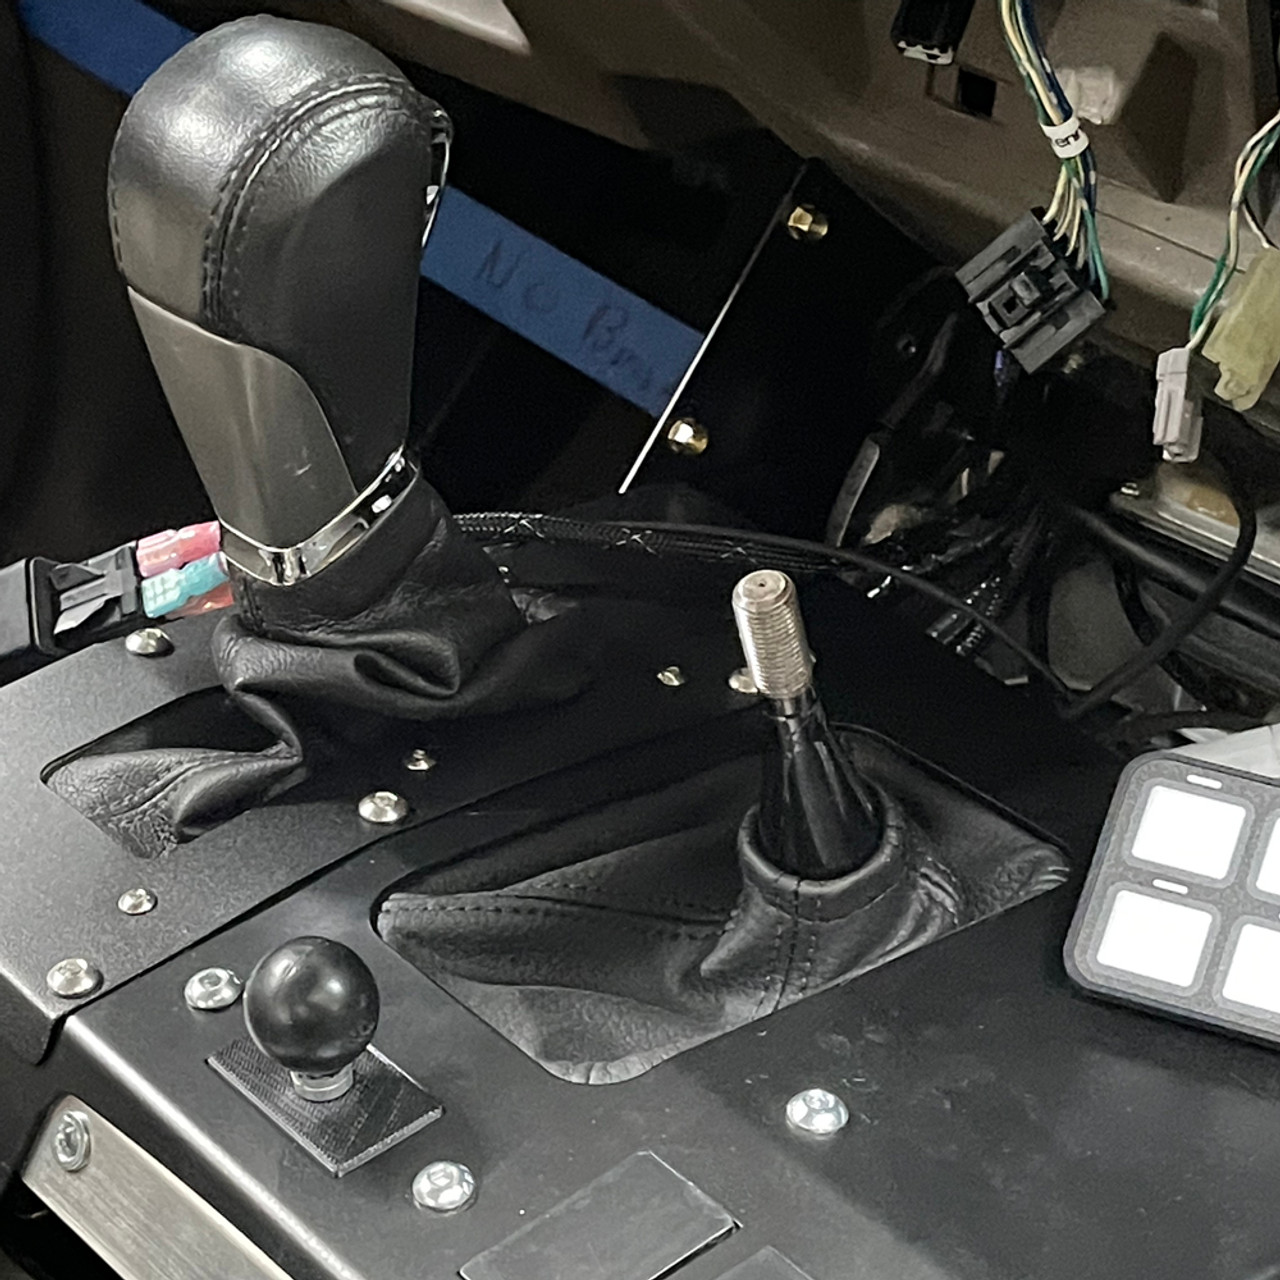 DashHole Plug- Mount, Notch-Free Face (DPM-1) Fits all 80s and 90s Toyota vehicles and Delta Console